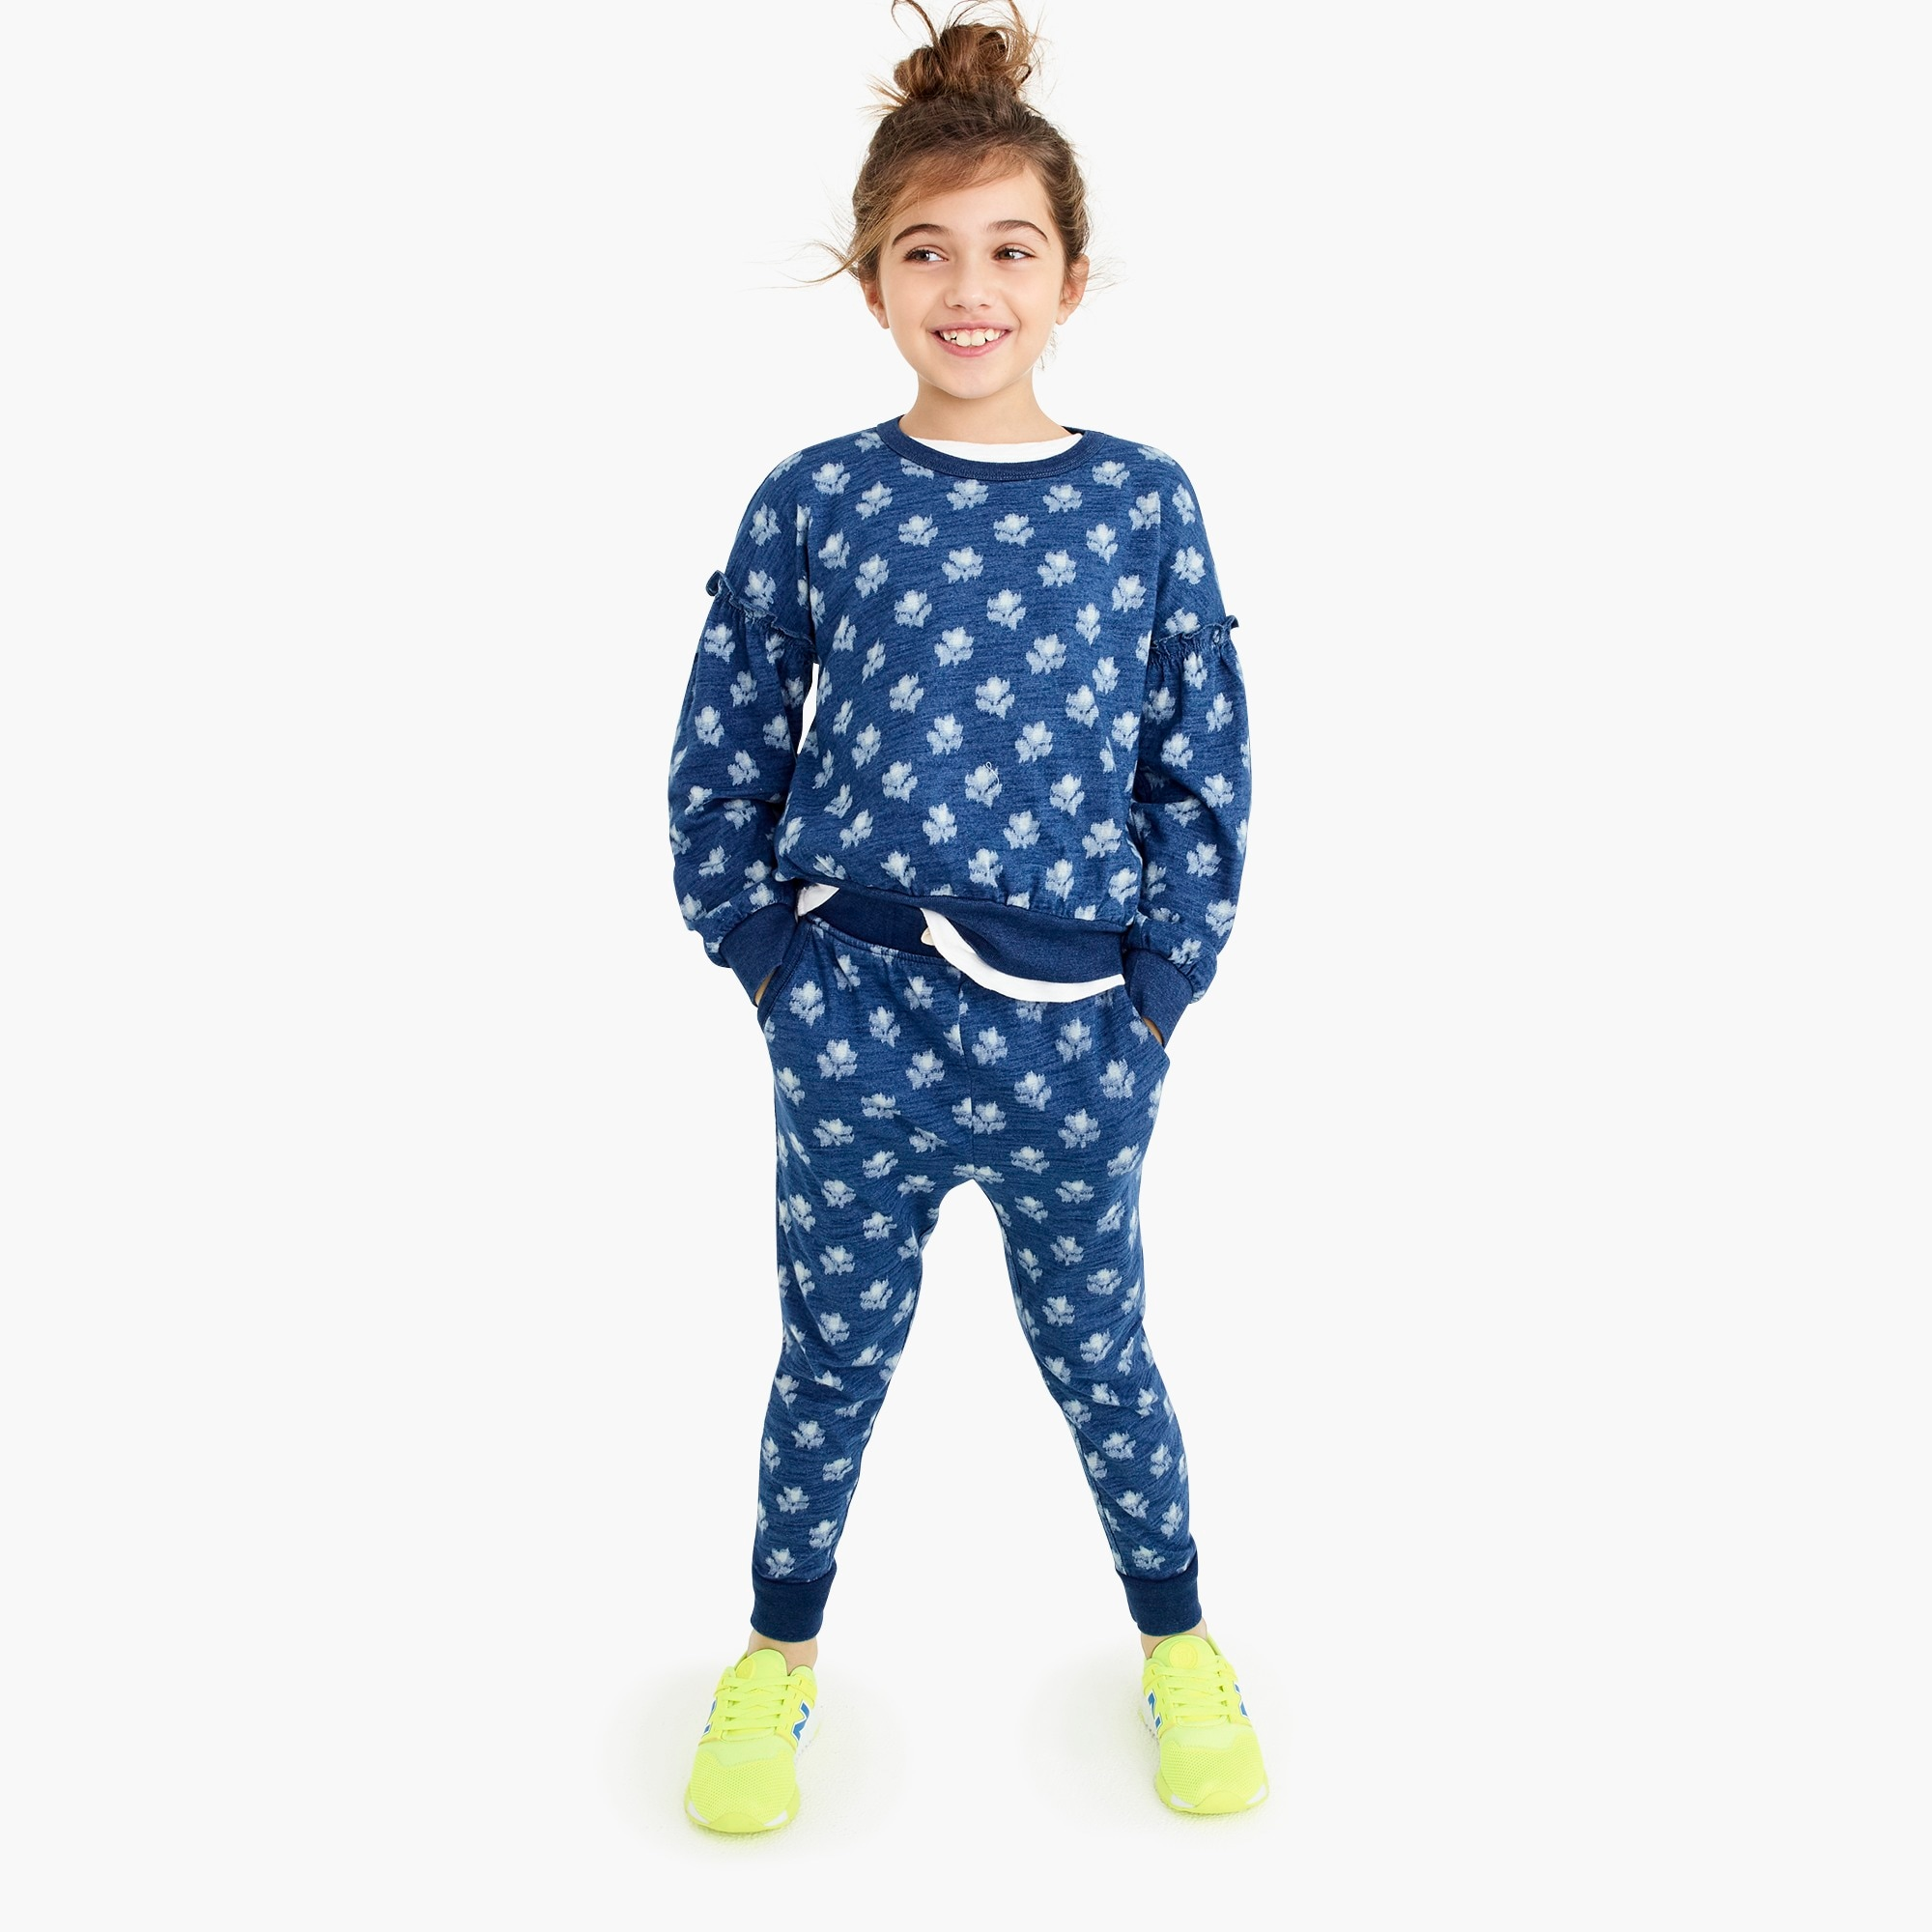 girls Girls' sweatpant in indigo floral